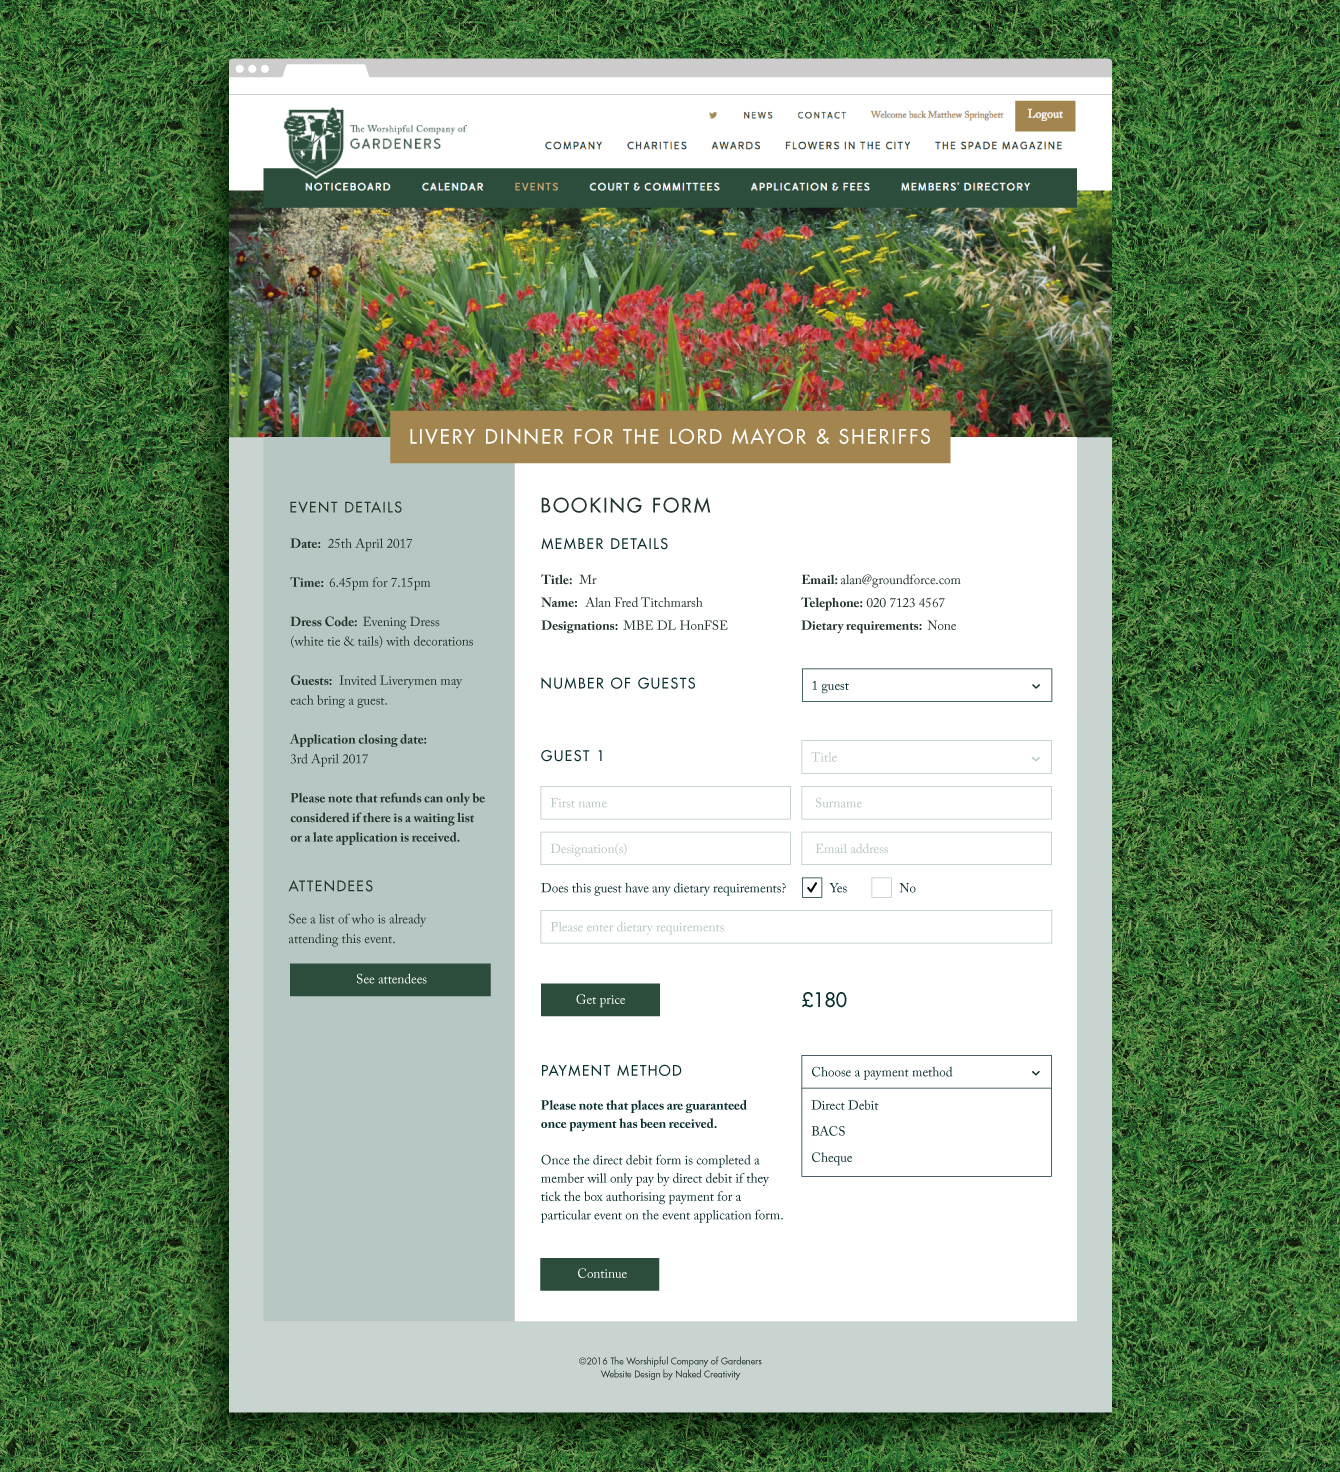 An event booking form in the members' area - desktop